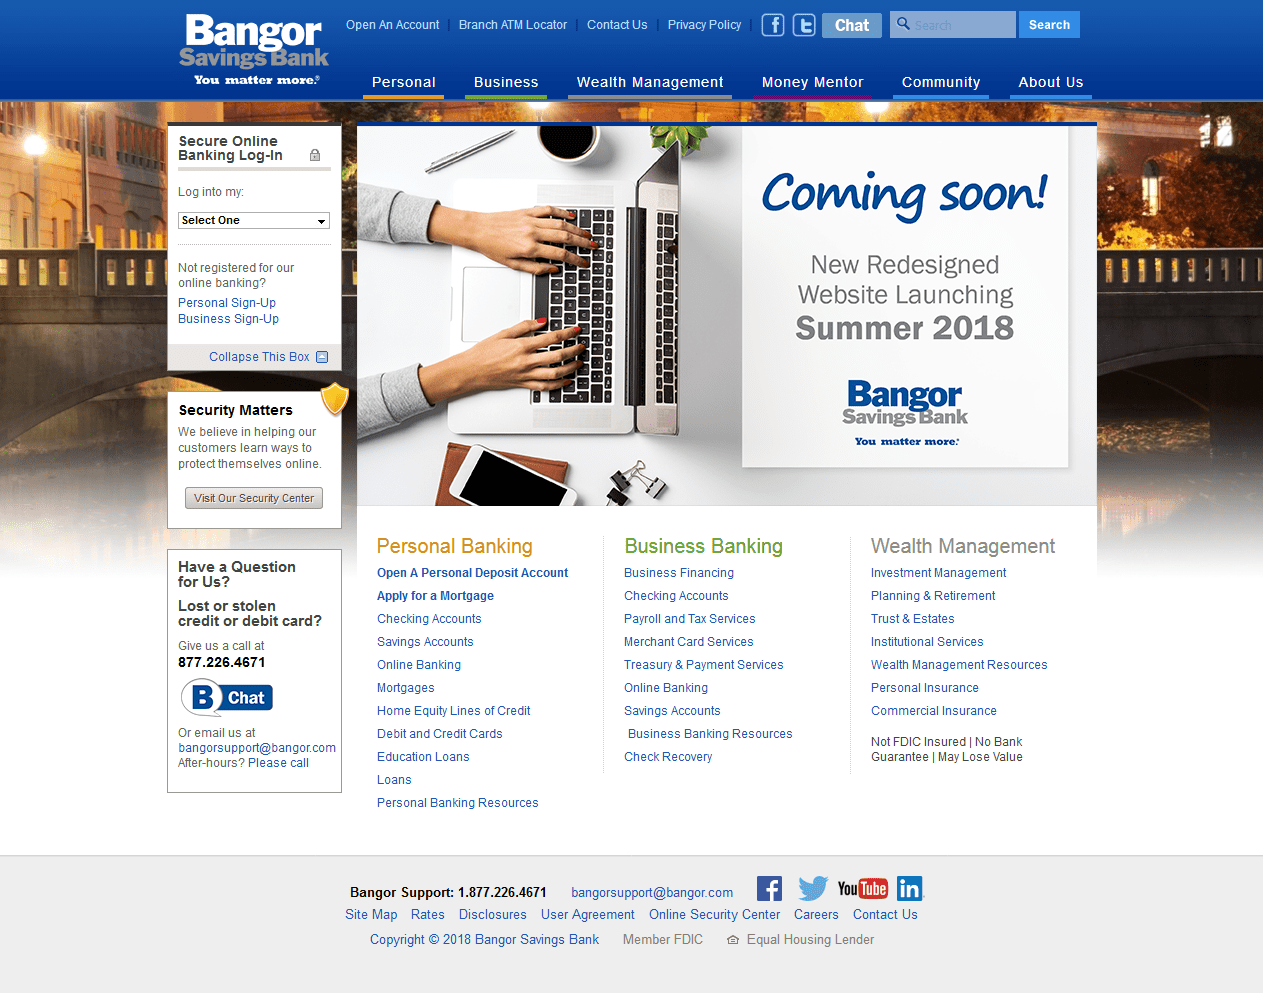 Bangor-Savings-Bank-Homepage Wiring Instructions Bank Of America on